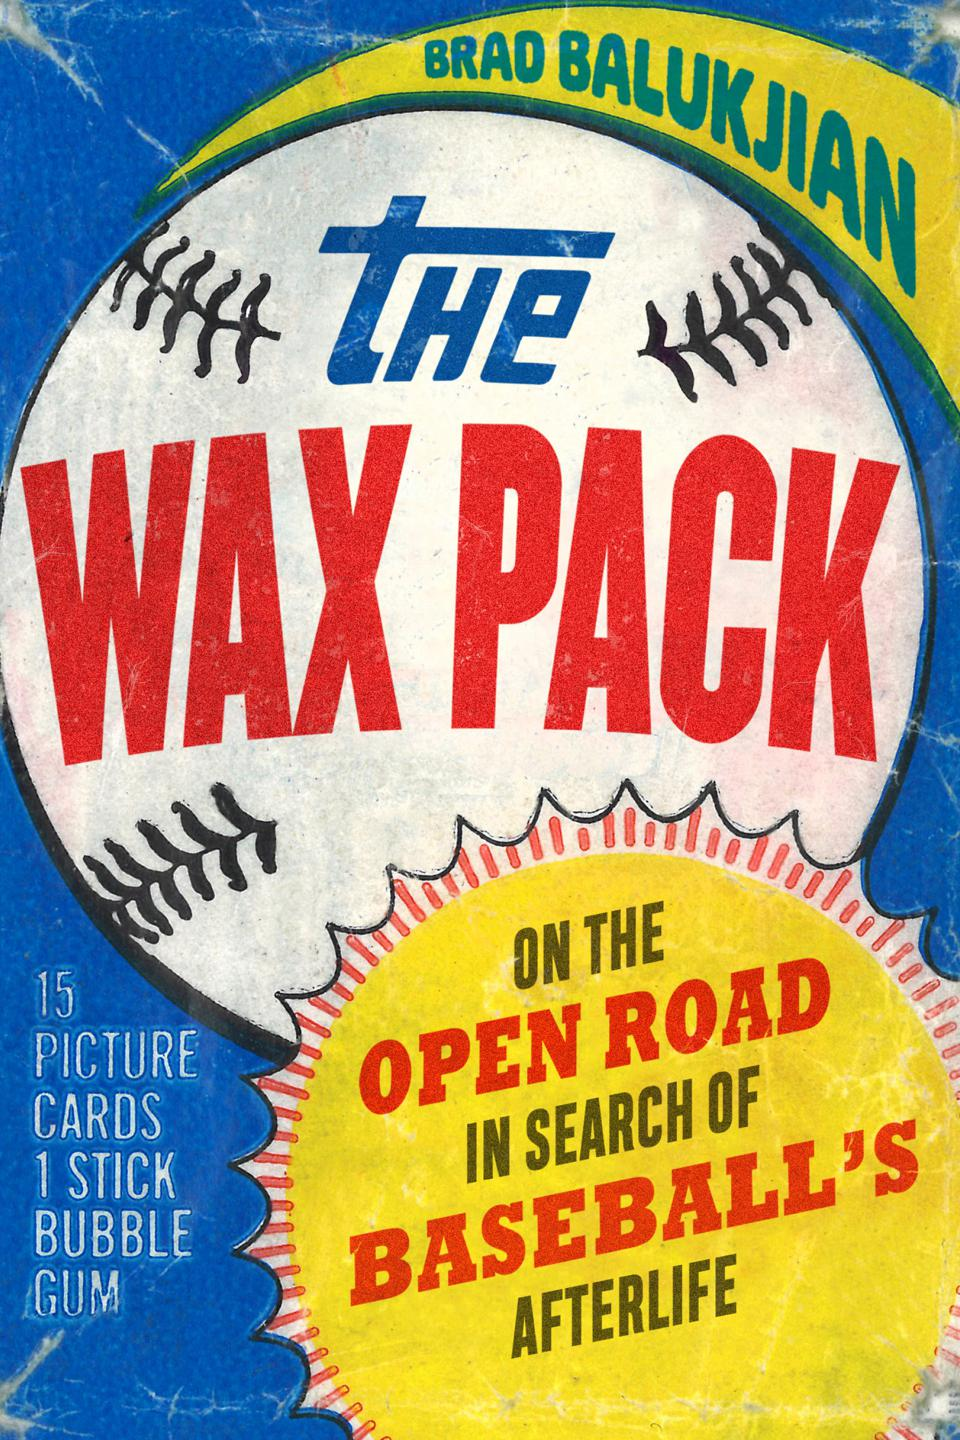 The front cover of the new book ″The Wax Pack″